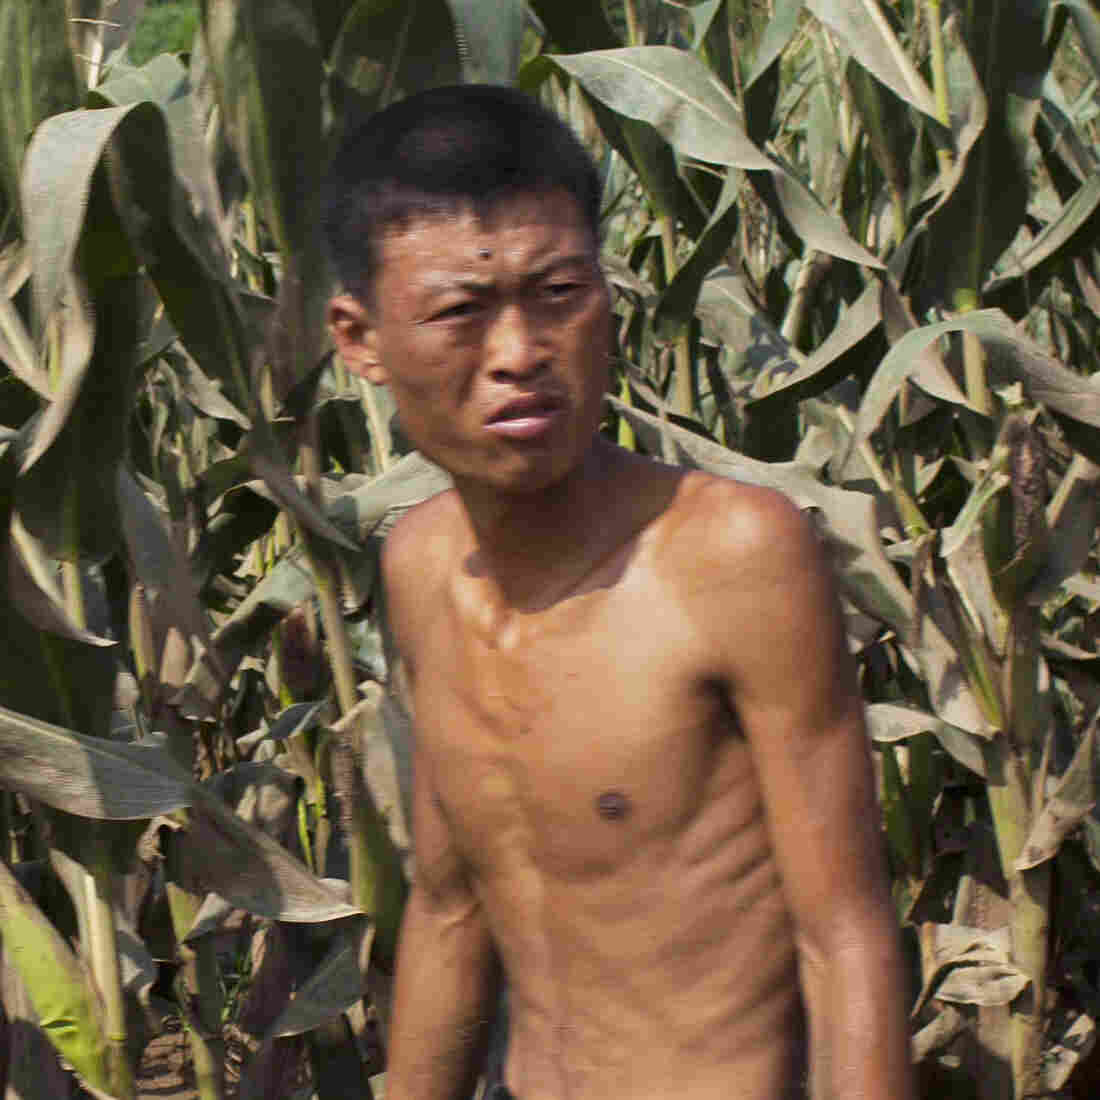 Hunger Still Haunts North Korea, Citizens Say